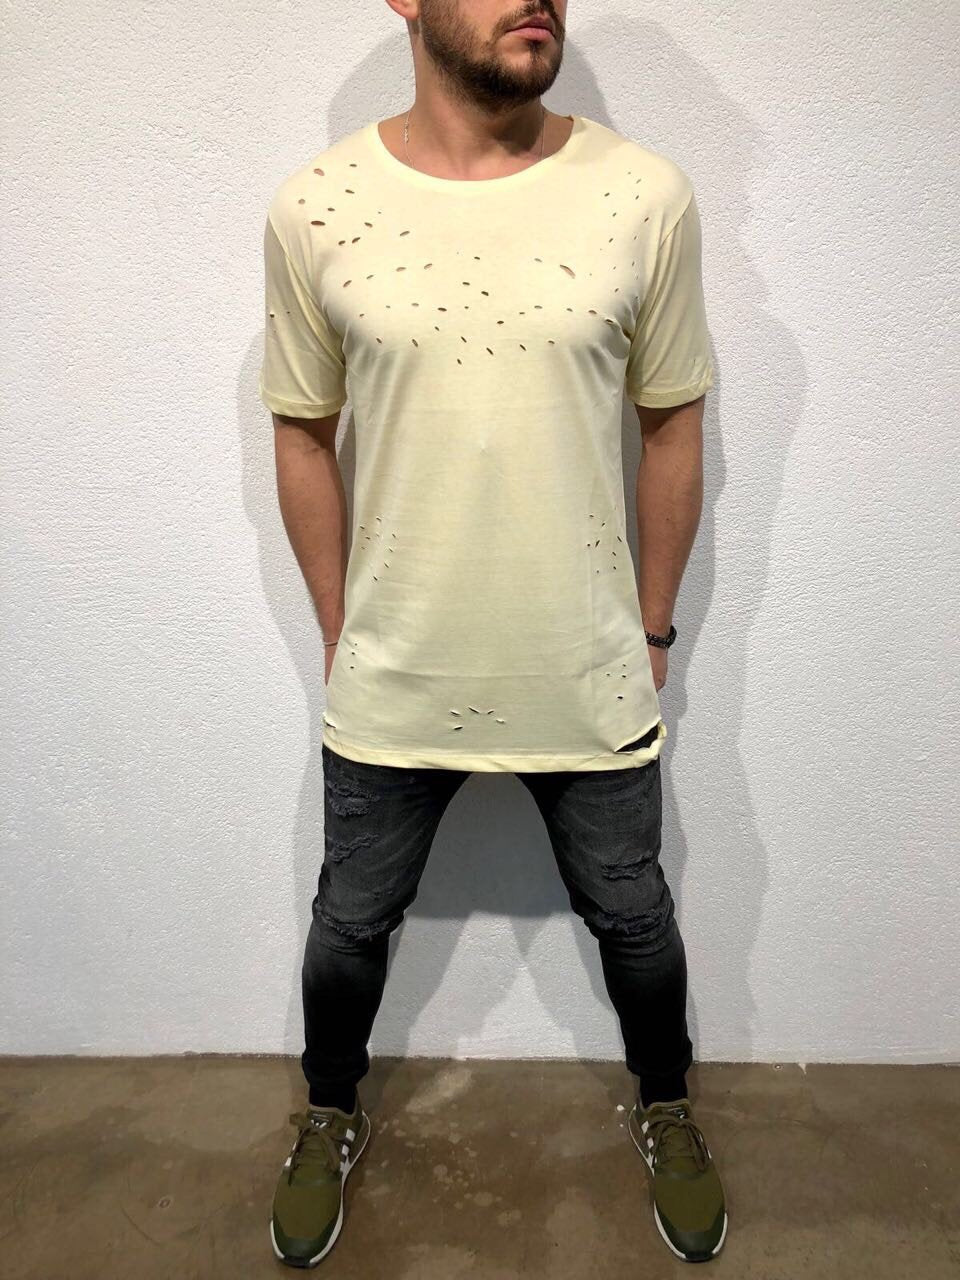 Yellow Hole Oversized T-Shirt B87 Streetwear T-Shirts - Sneakerjeans